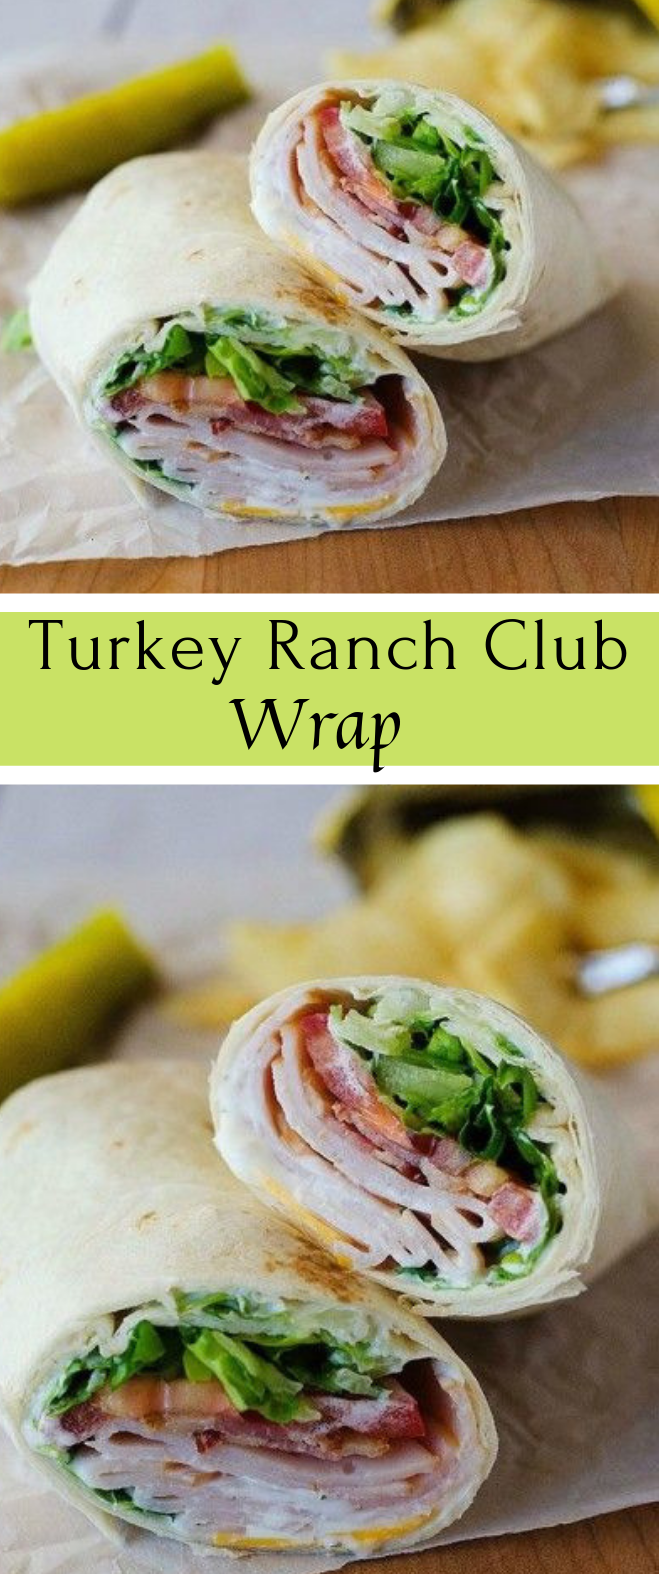 Turkey Ranch Club Wraps #turkey #dinner